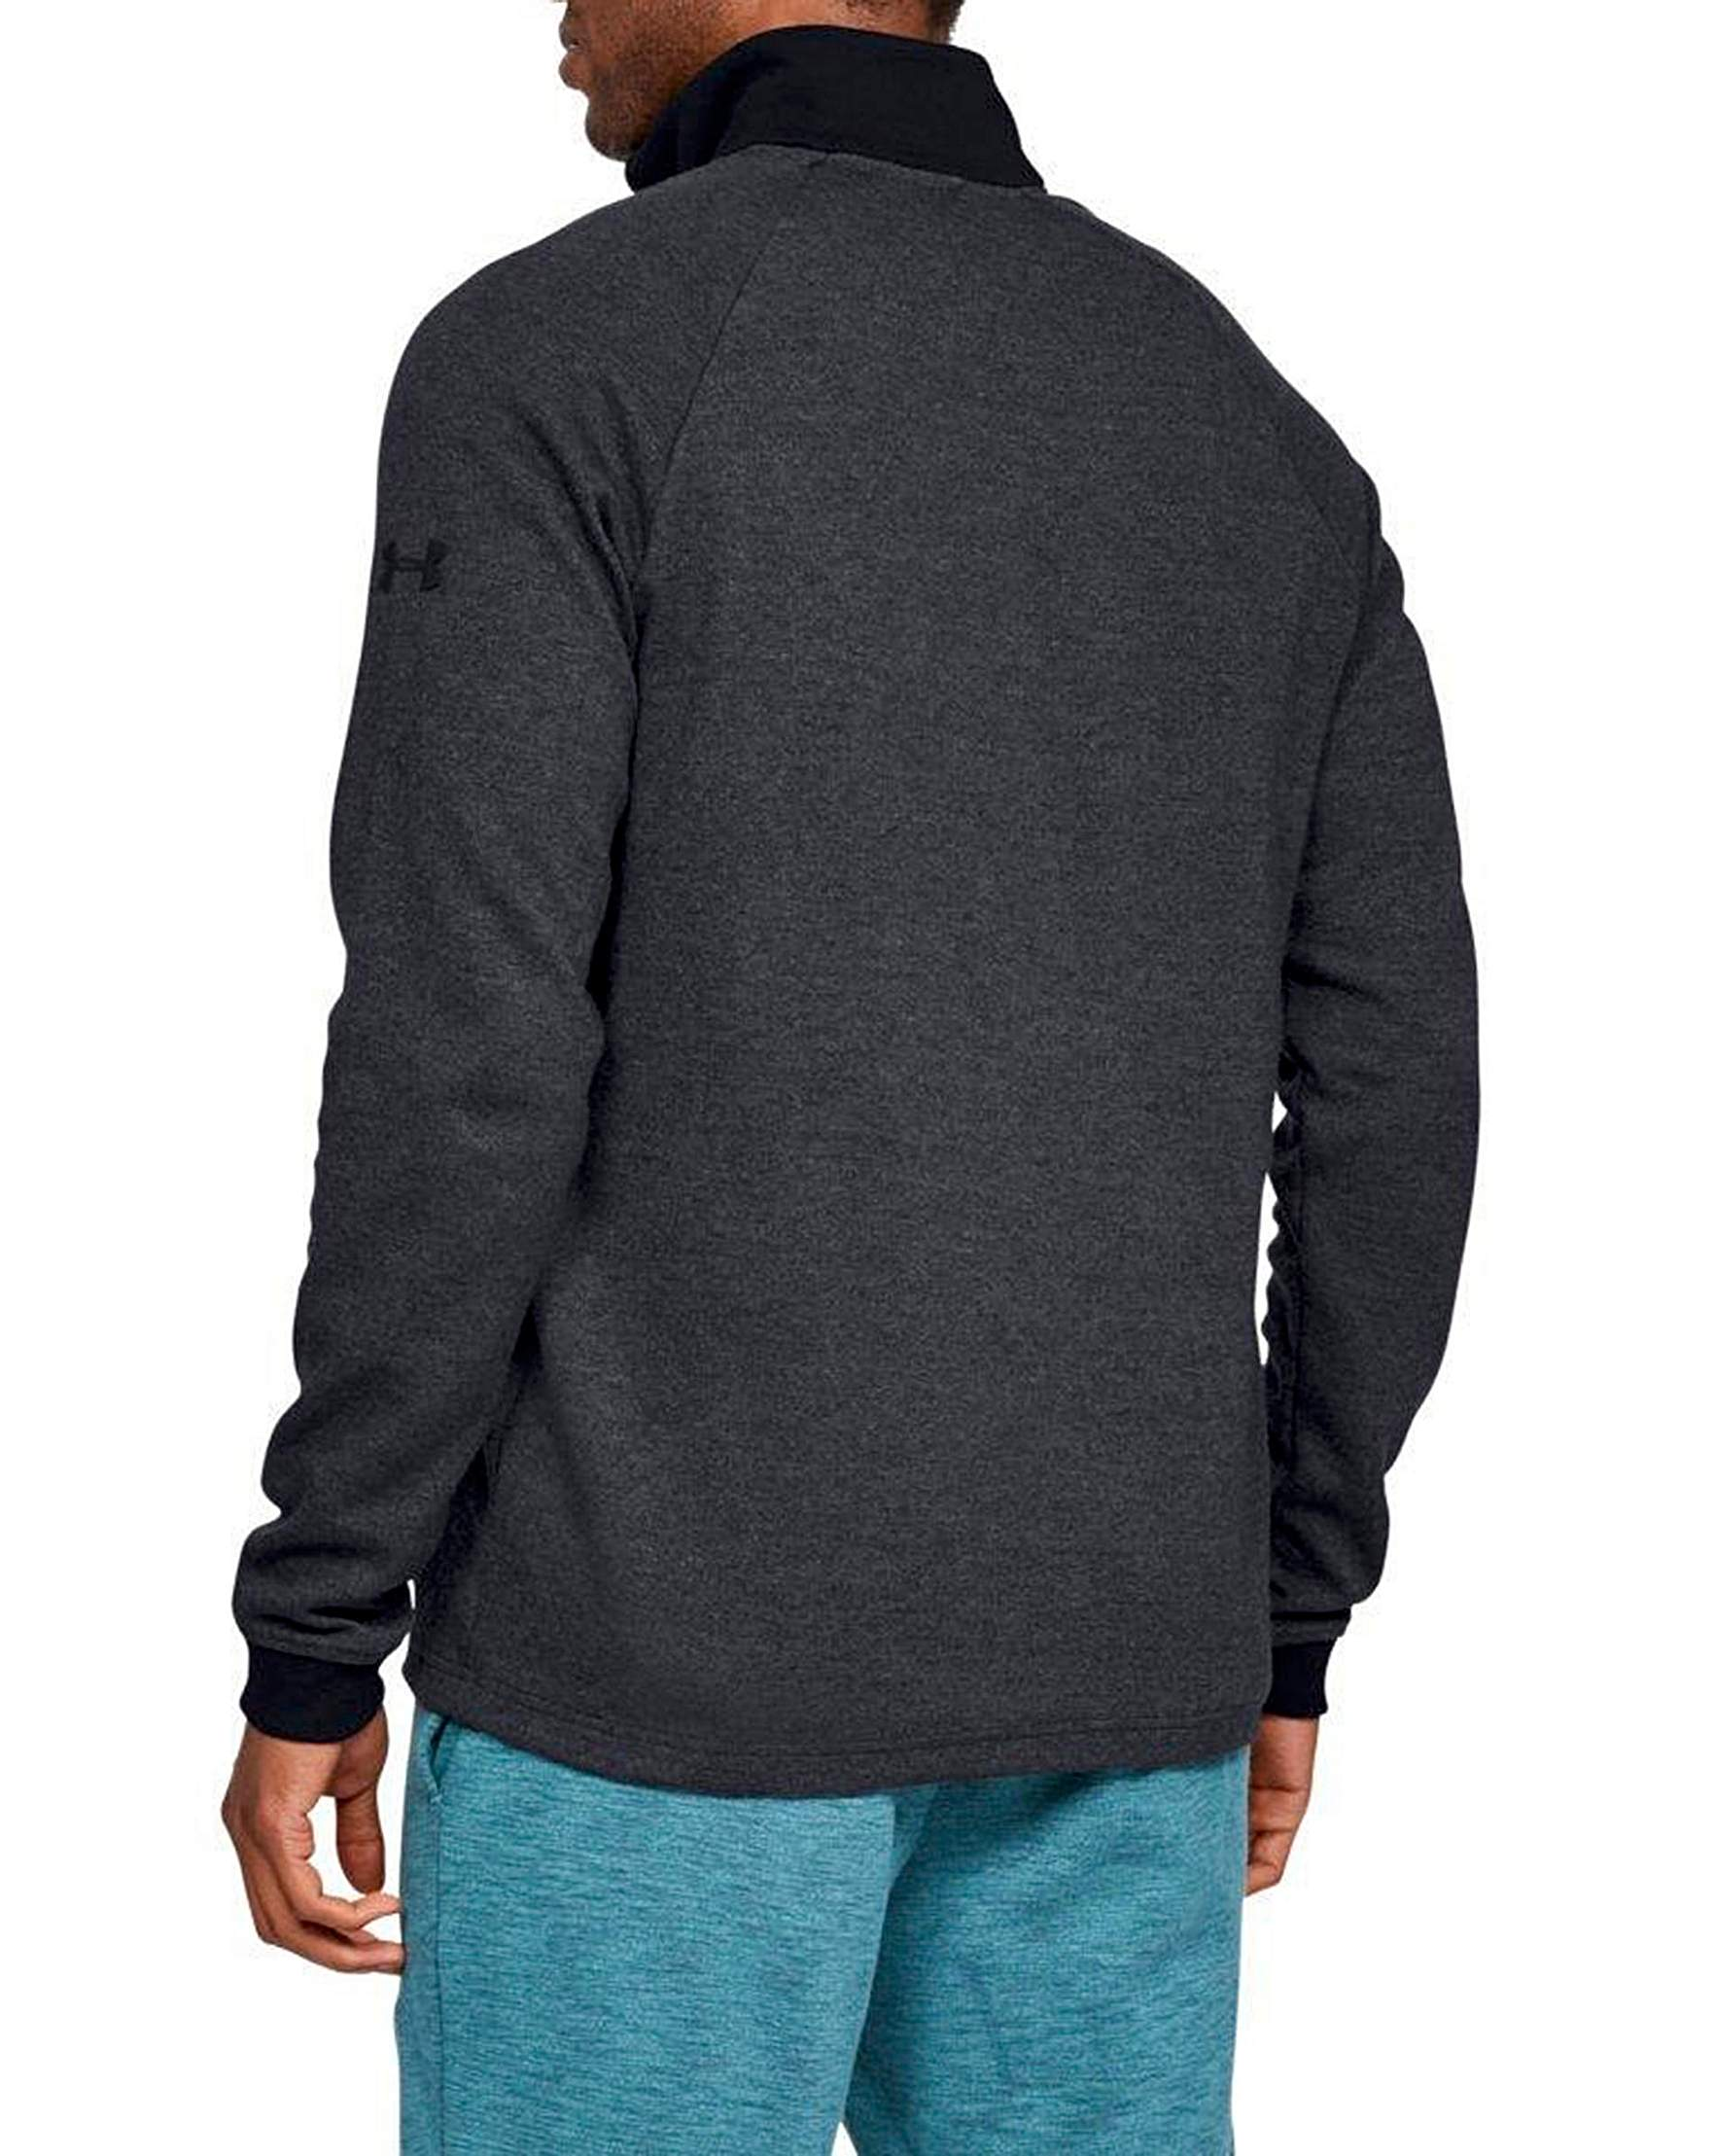 b8230adca6 Under Armour Unstoppable Knit 1/2 Zip